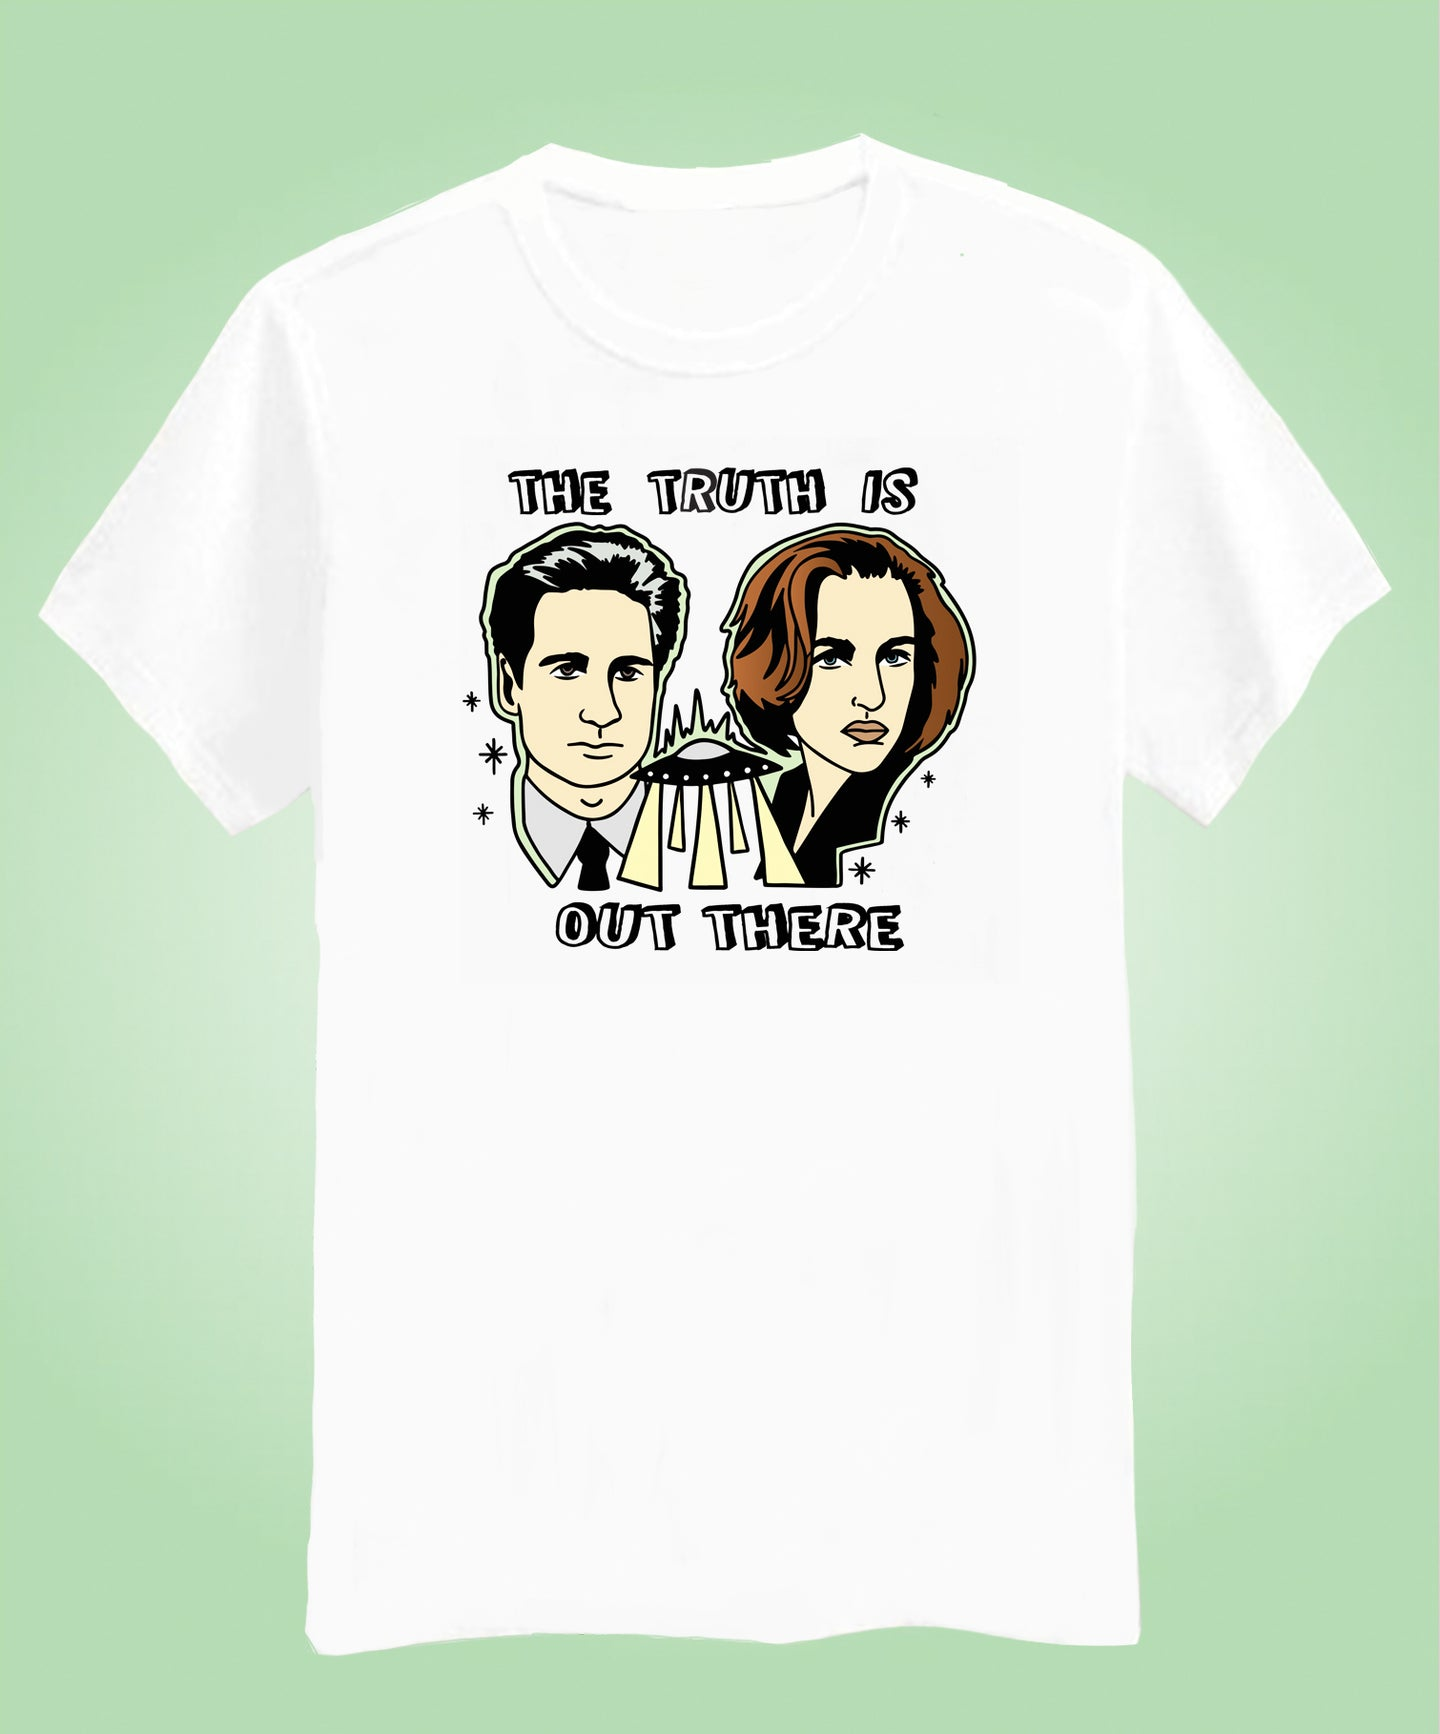 The Truth Is out There - Unisex Tshirts